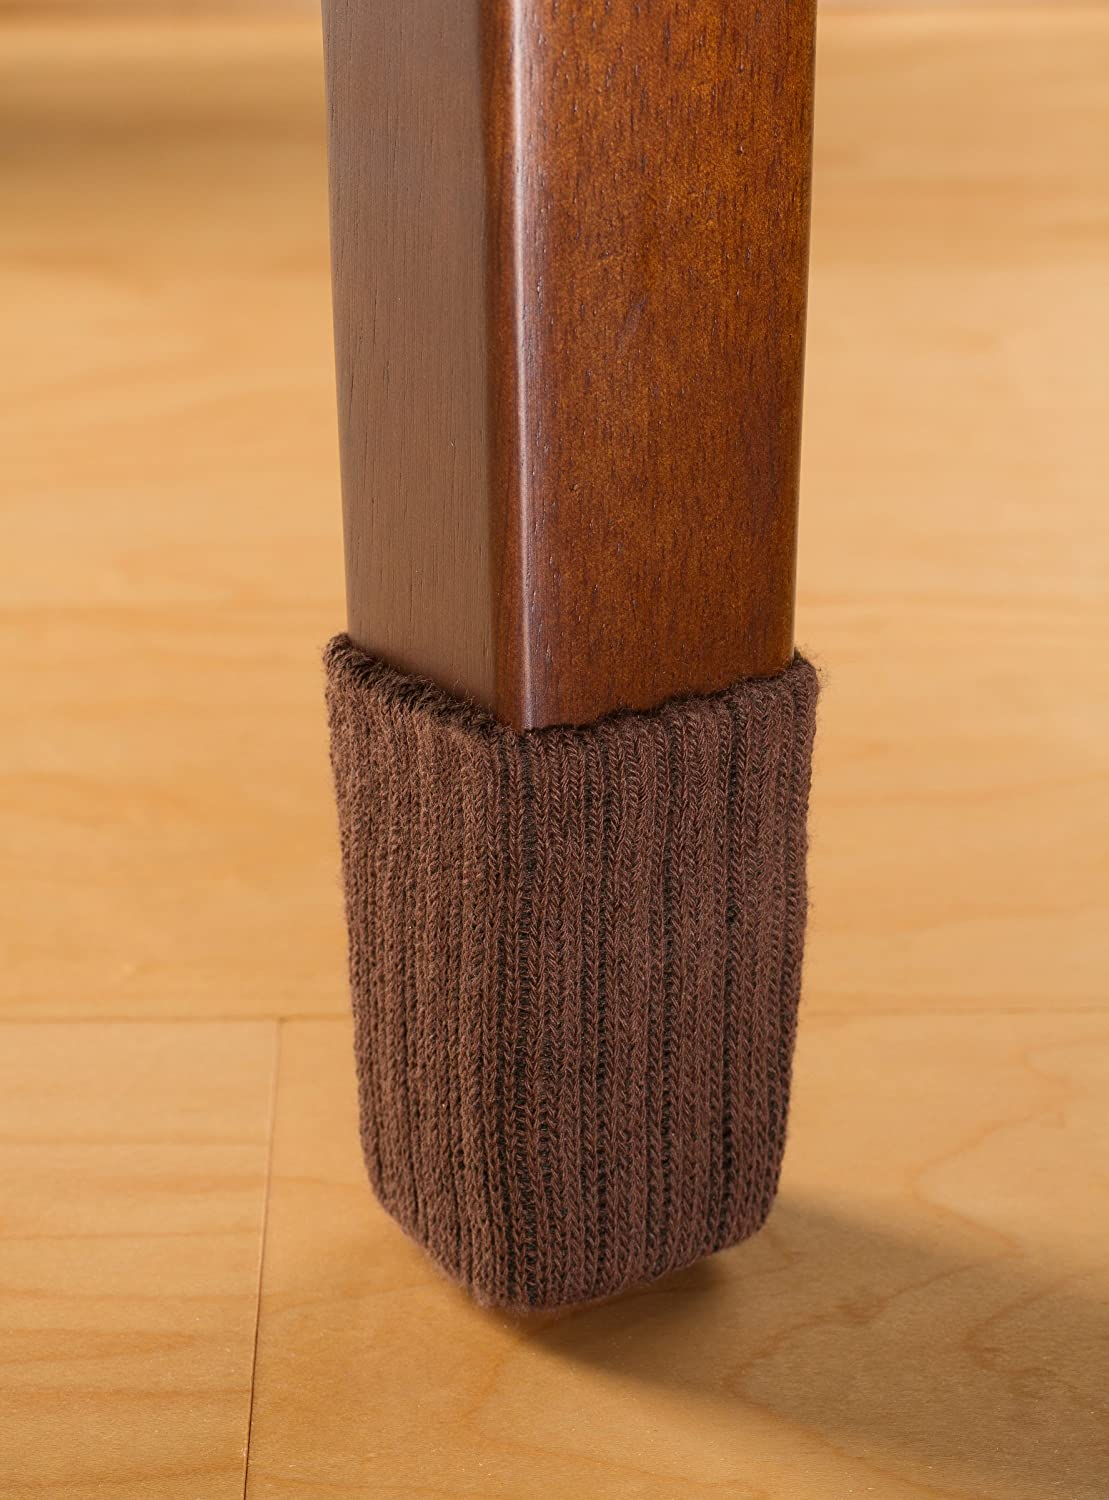 Nancyprotectz Small Brown Patented With Rubberized Grips Chair